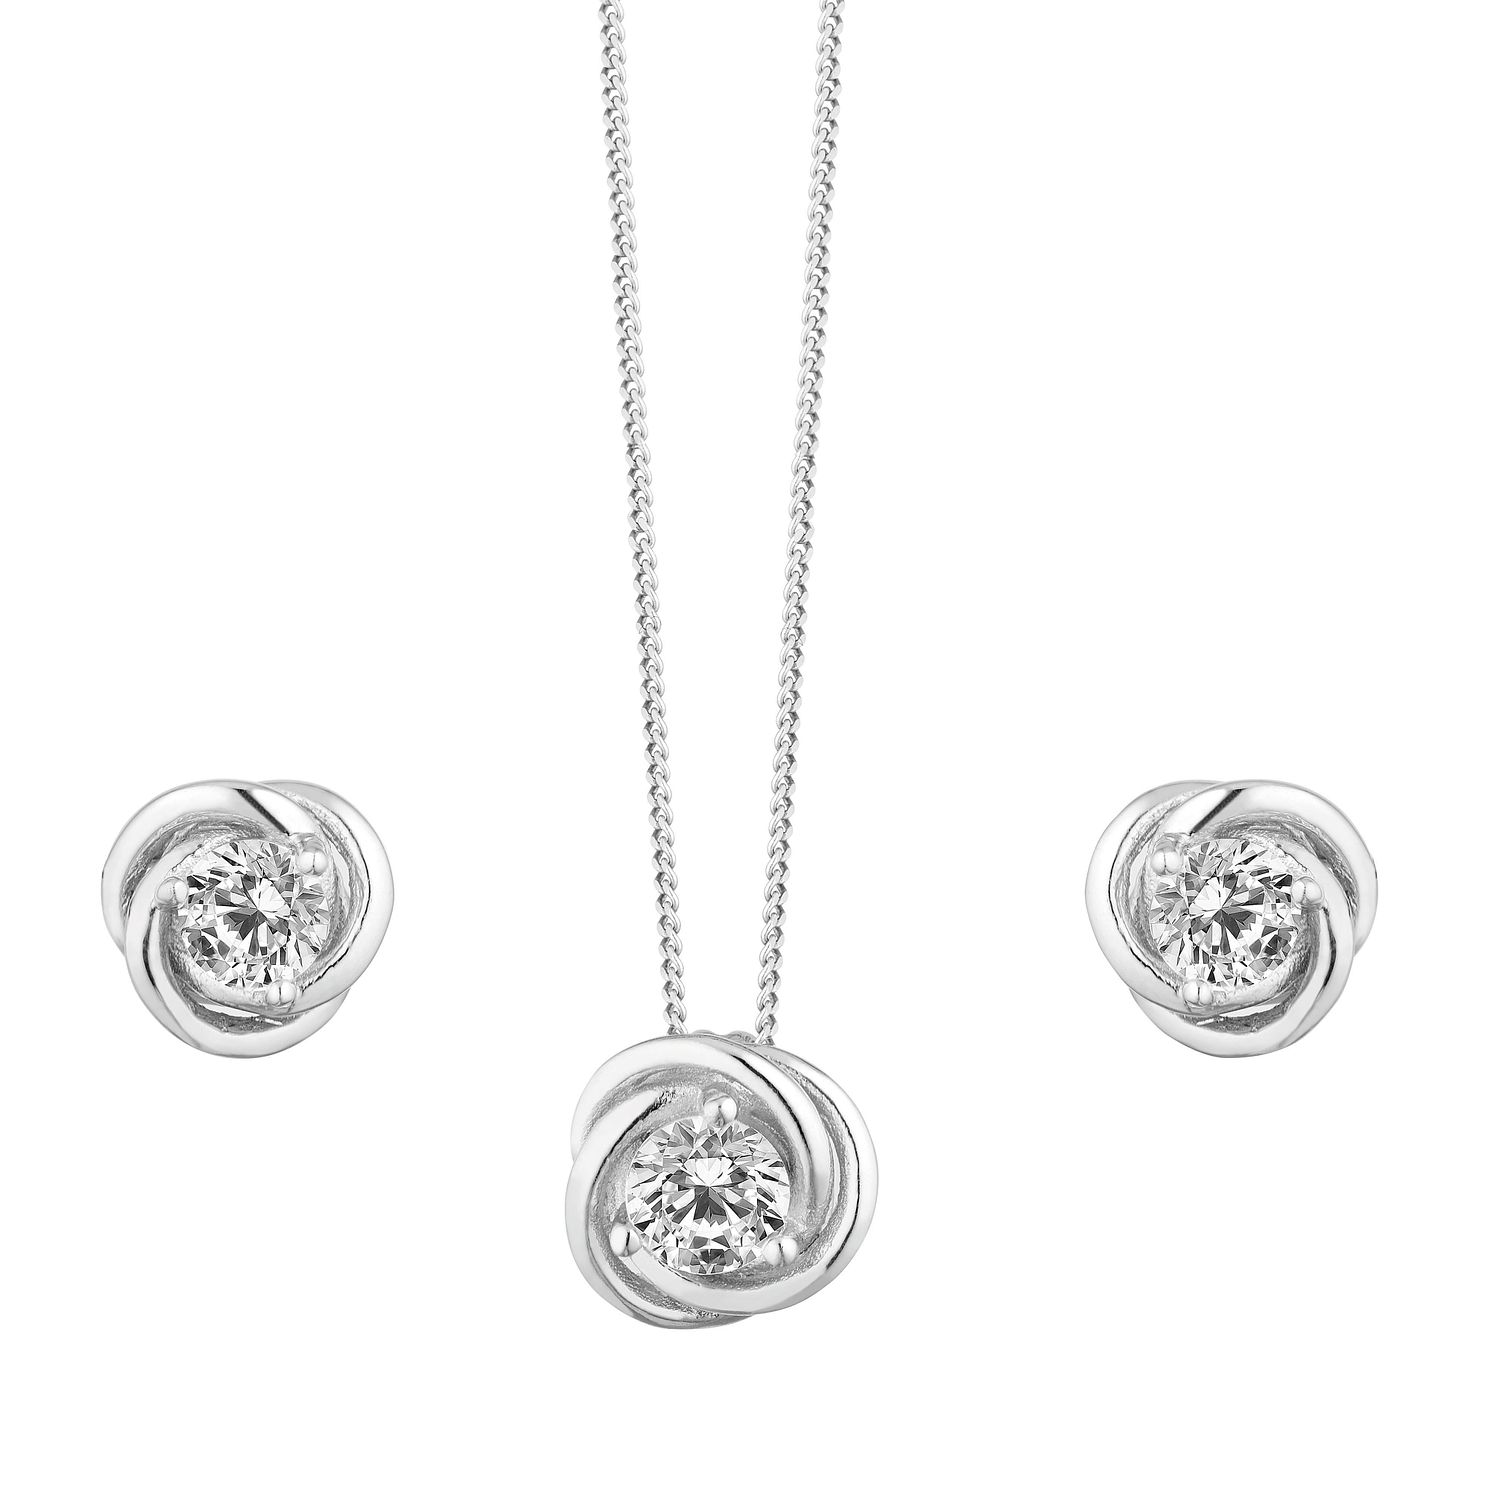 Silver Cubic Zirconia Knot Jewellery Set - Product number 9663339